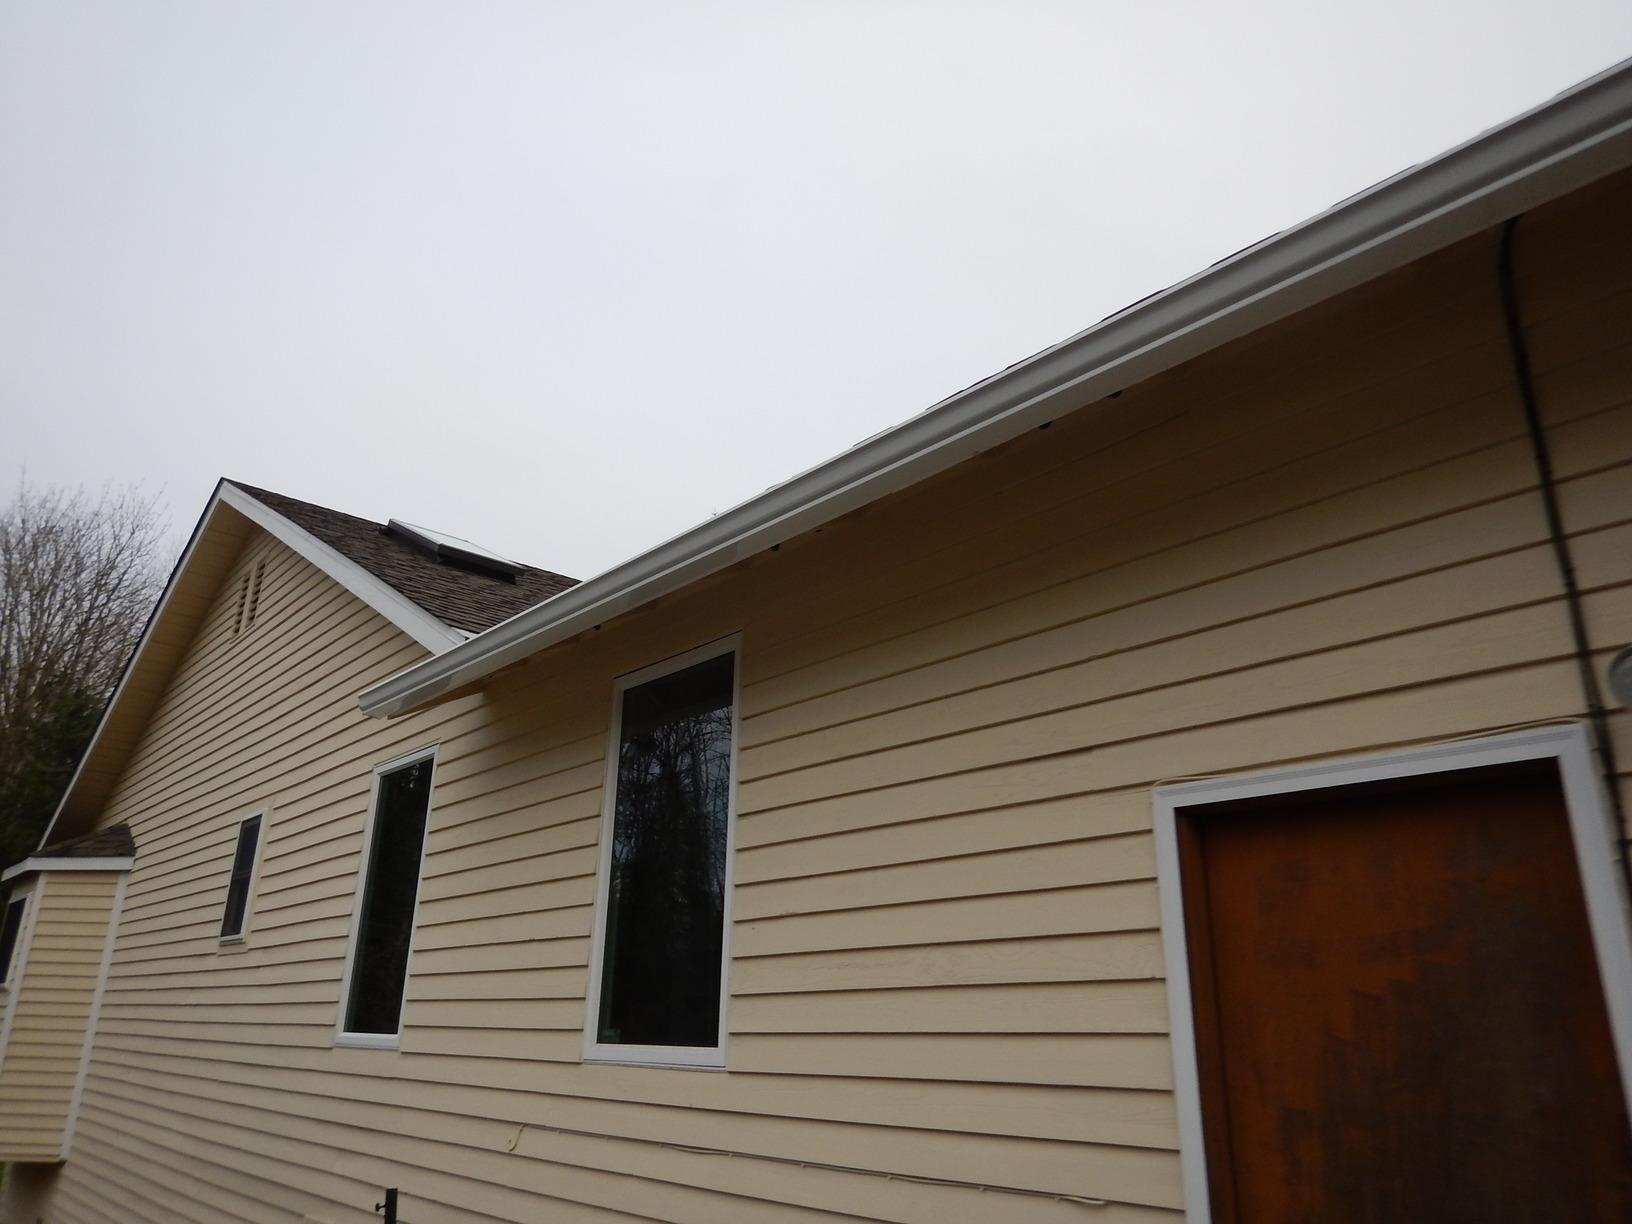 Home Installed Gutter Guards Replaced with Professional System in Maple Valley, WA. - After Photo